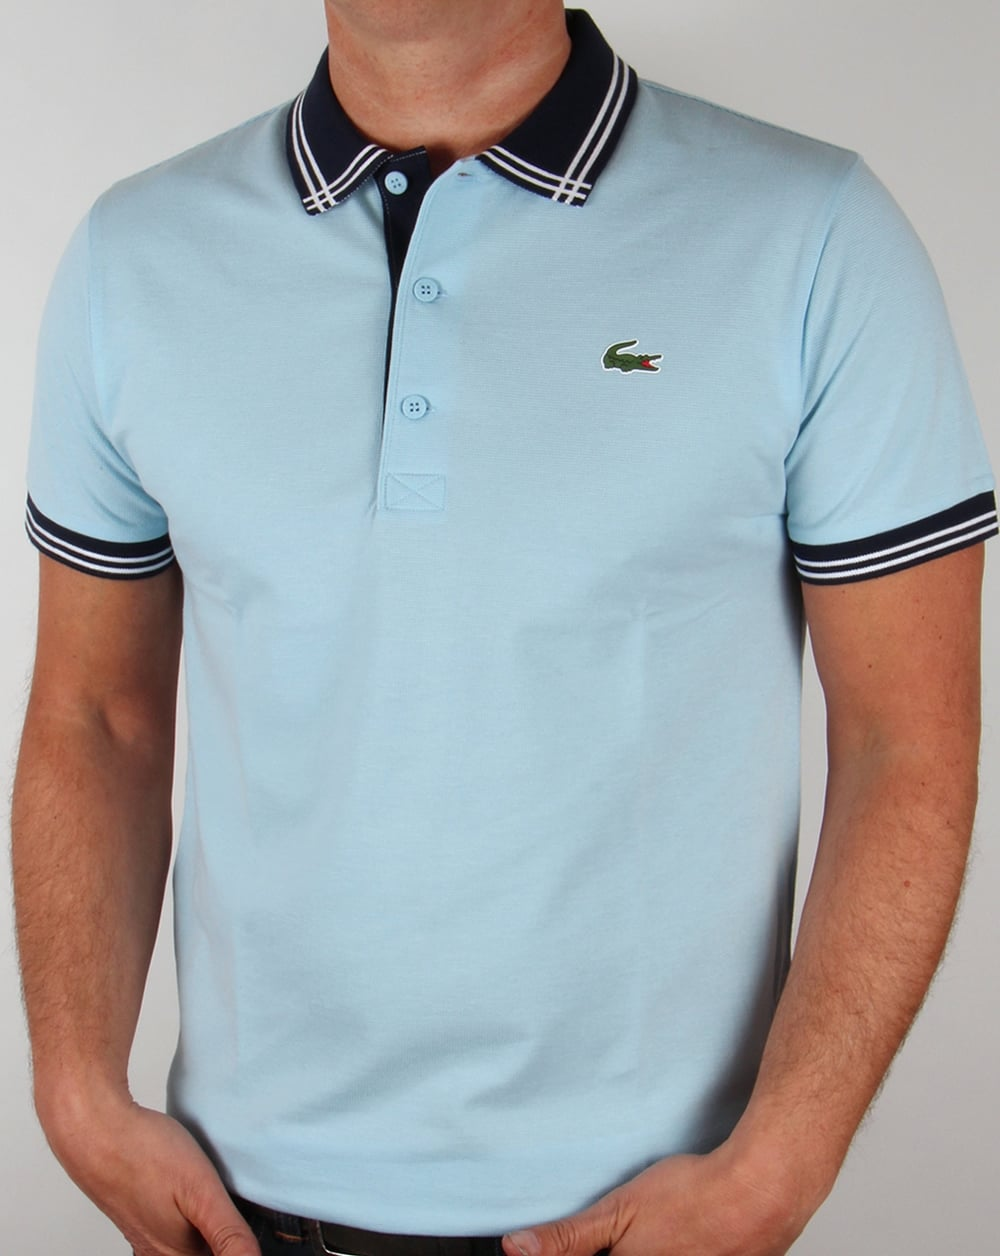 nakedprogrammzce.cf has the lowest prices fastest delivery. Shop for cheap Blank Shirts, T-shirts, polo shirts, jackets, Tee Shirts, knit shirts, fleece pullovers, denim.